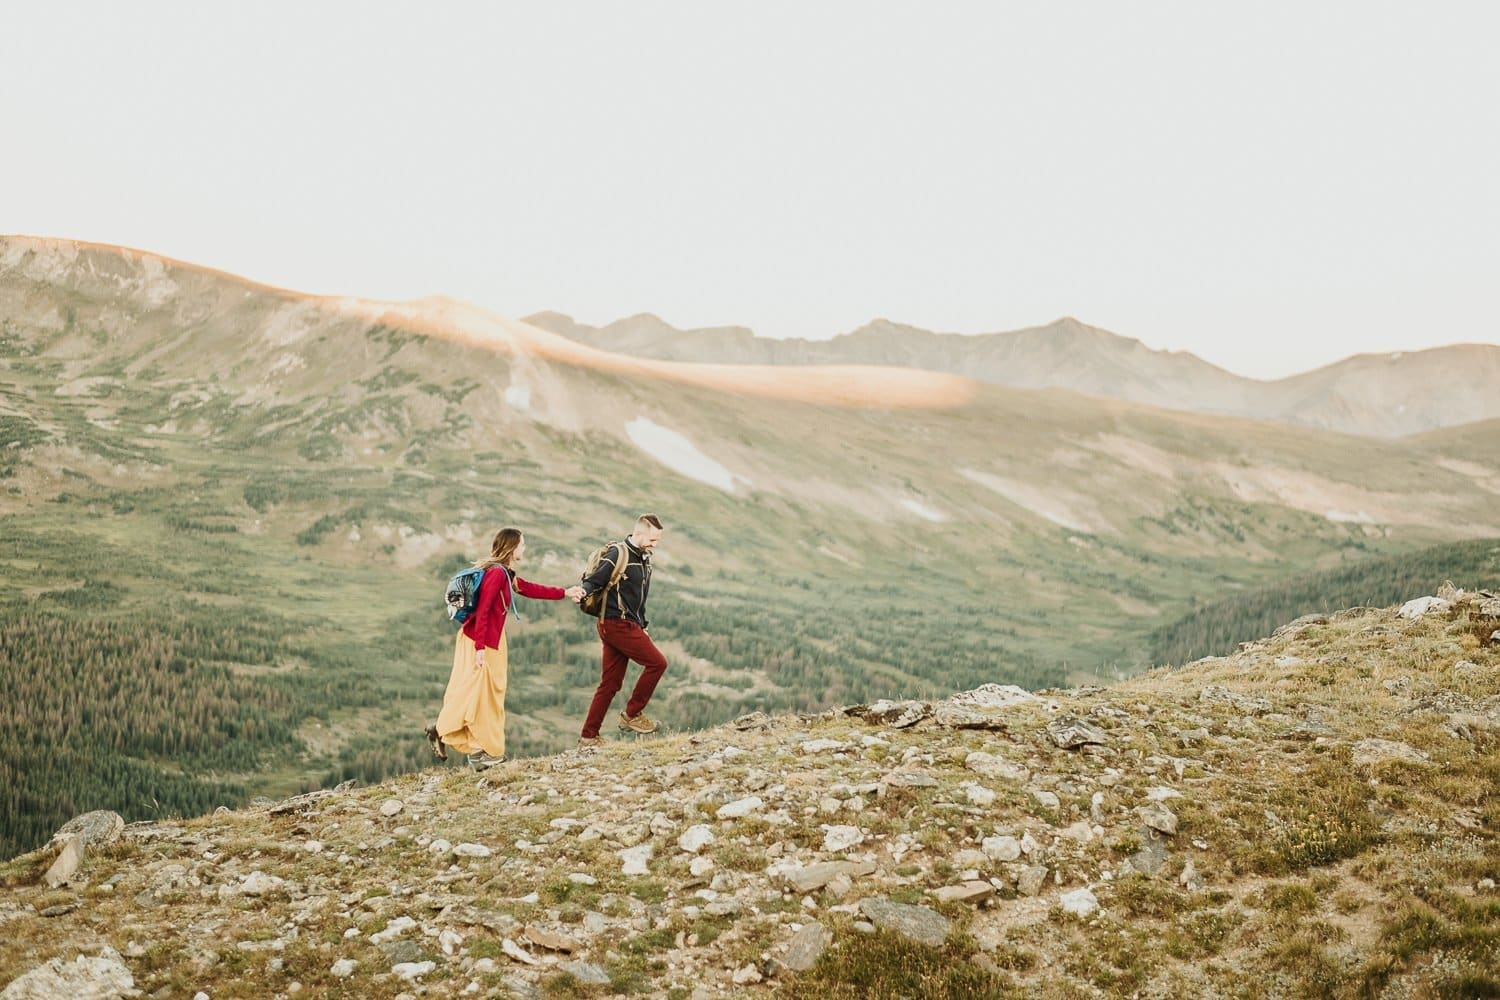 STAR GAZING MOUNTAIN ENGAGEMENT ADVENTURES|JULIANNE+DARREN|ROCKY MOUNTAIN NATIONAL PARK SPRING ADVENTURES | COLORADO SUNRISE ADVENTURE|MOUNTAIN HIKING ADVENTURE PHOTOGRAPHER|TRAIL RIDGE ROAD HIKING ADVENTURE|INTIMATE WEDDING + ADVENTUROUS ELOPEMENT PHOTOGRAPHER|ADVENTURE WEDDING PHOTOGRAPHER| ESTES PARK COLORADO ENGAGEMENT PHOTOGRAPHER